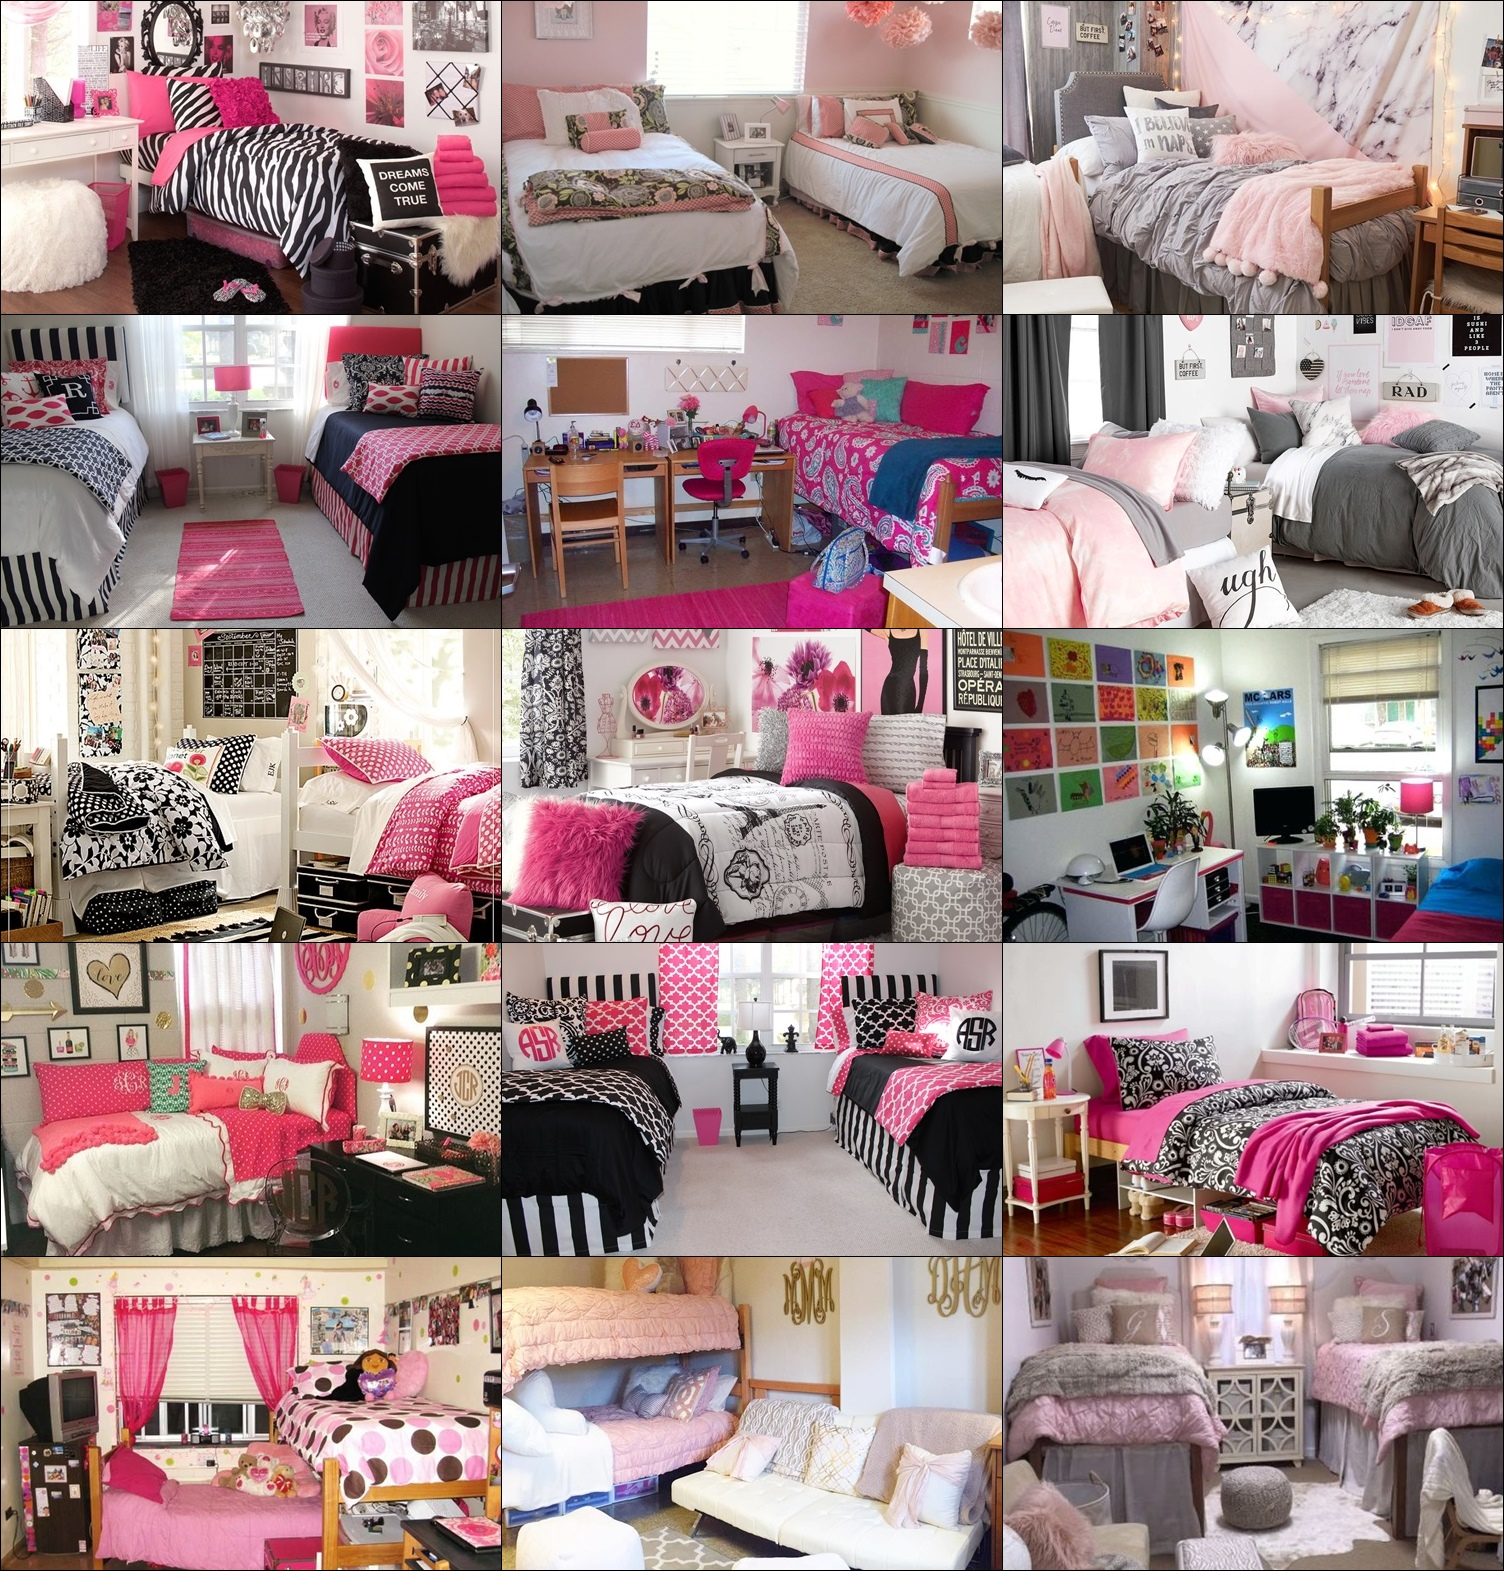 bedroom-interior-zebra-deep-pink-theme-dorm-room-marilyn ...